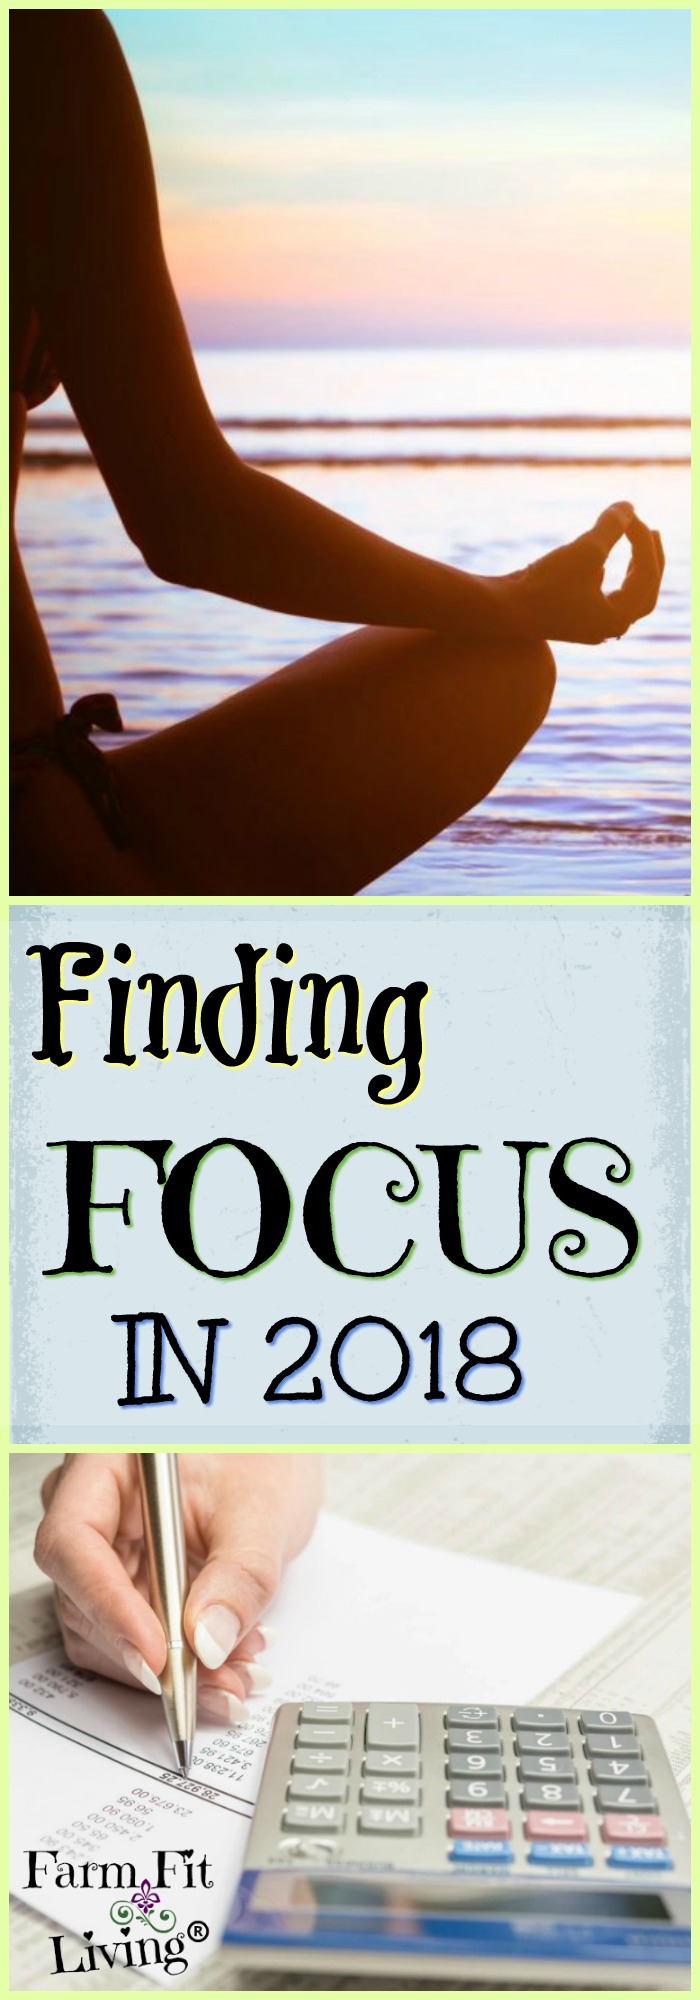 Are you looking for tips for finding #focus in 2018? Ways to be more present? Check out this Rural Women Inspired #Podcast Episode for what to focus on in 2018.